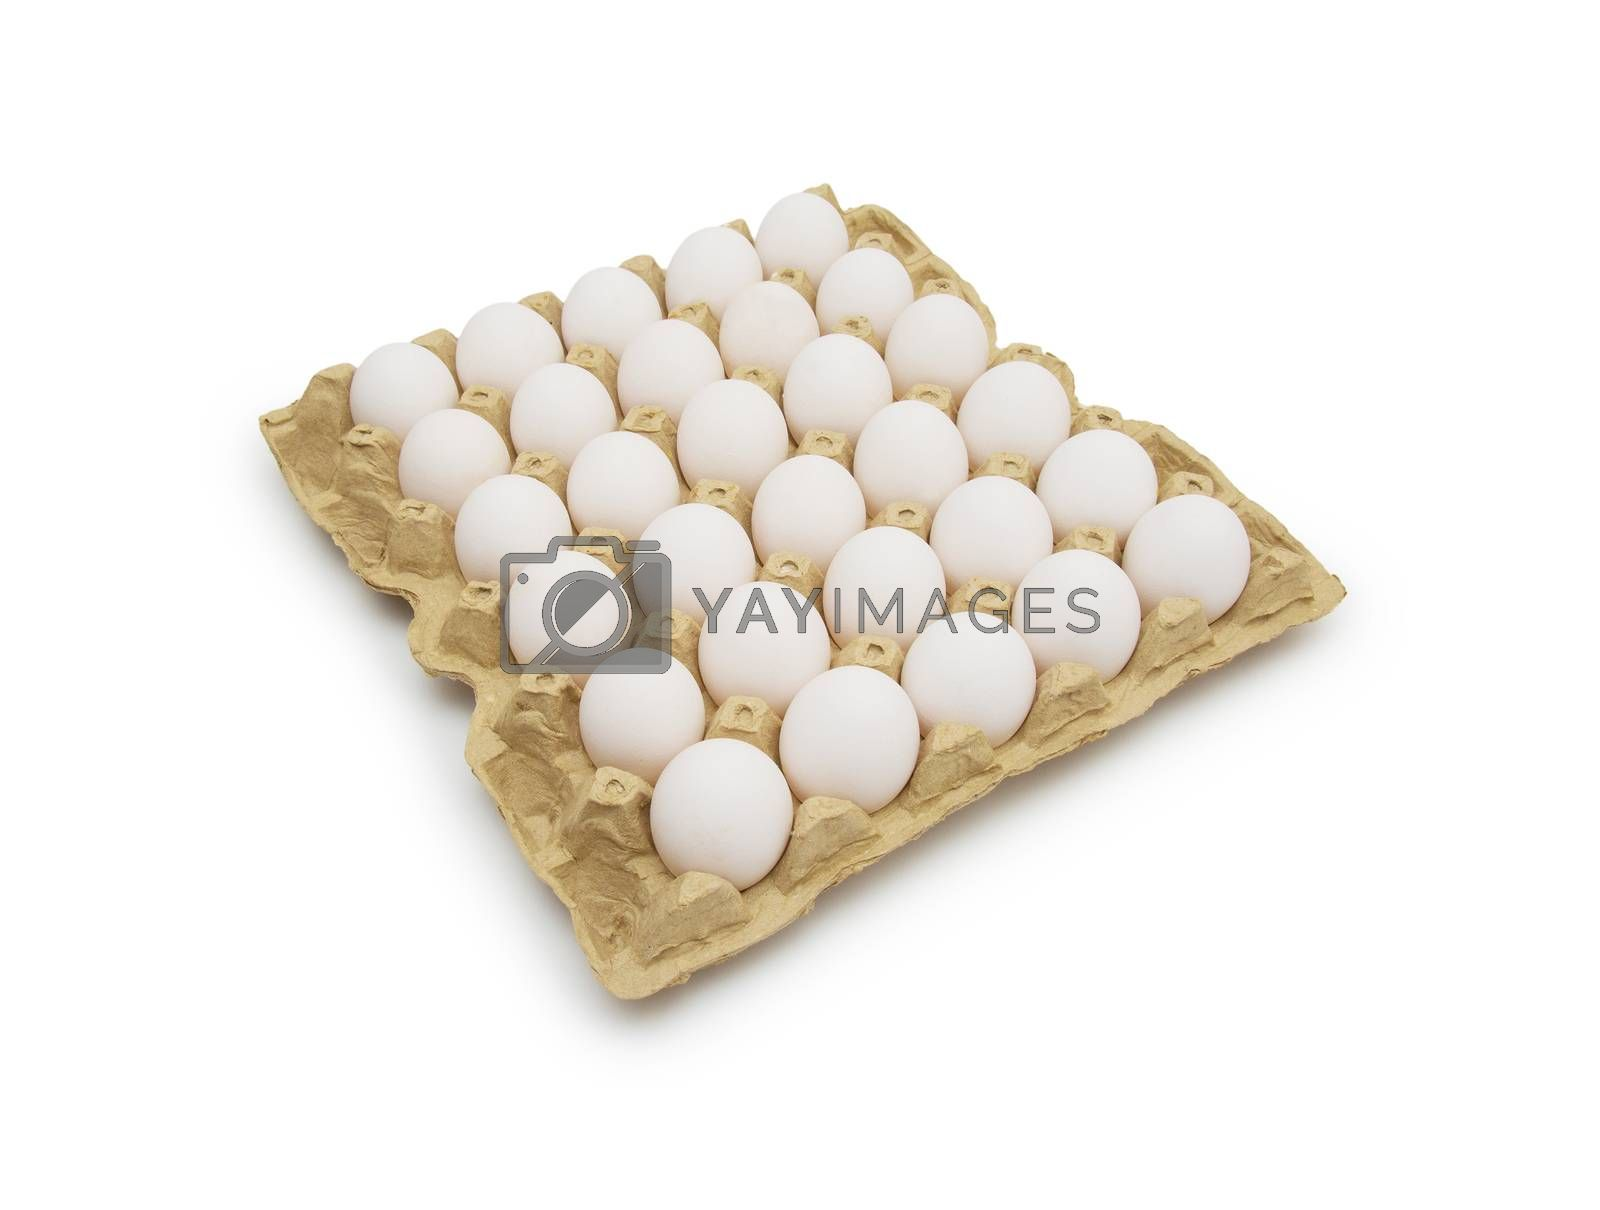 Royalty free image of Eggs in carton on white with clipping path by cocoo